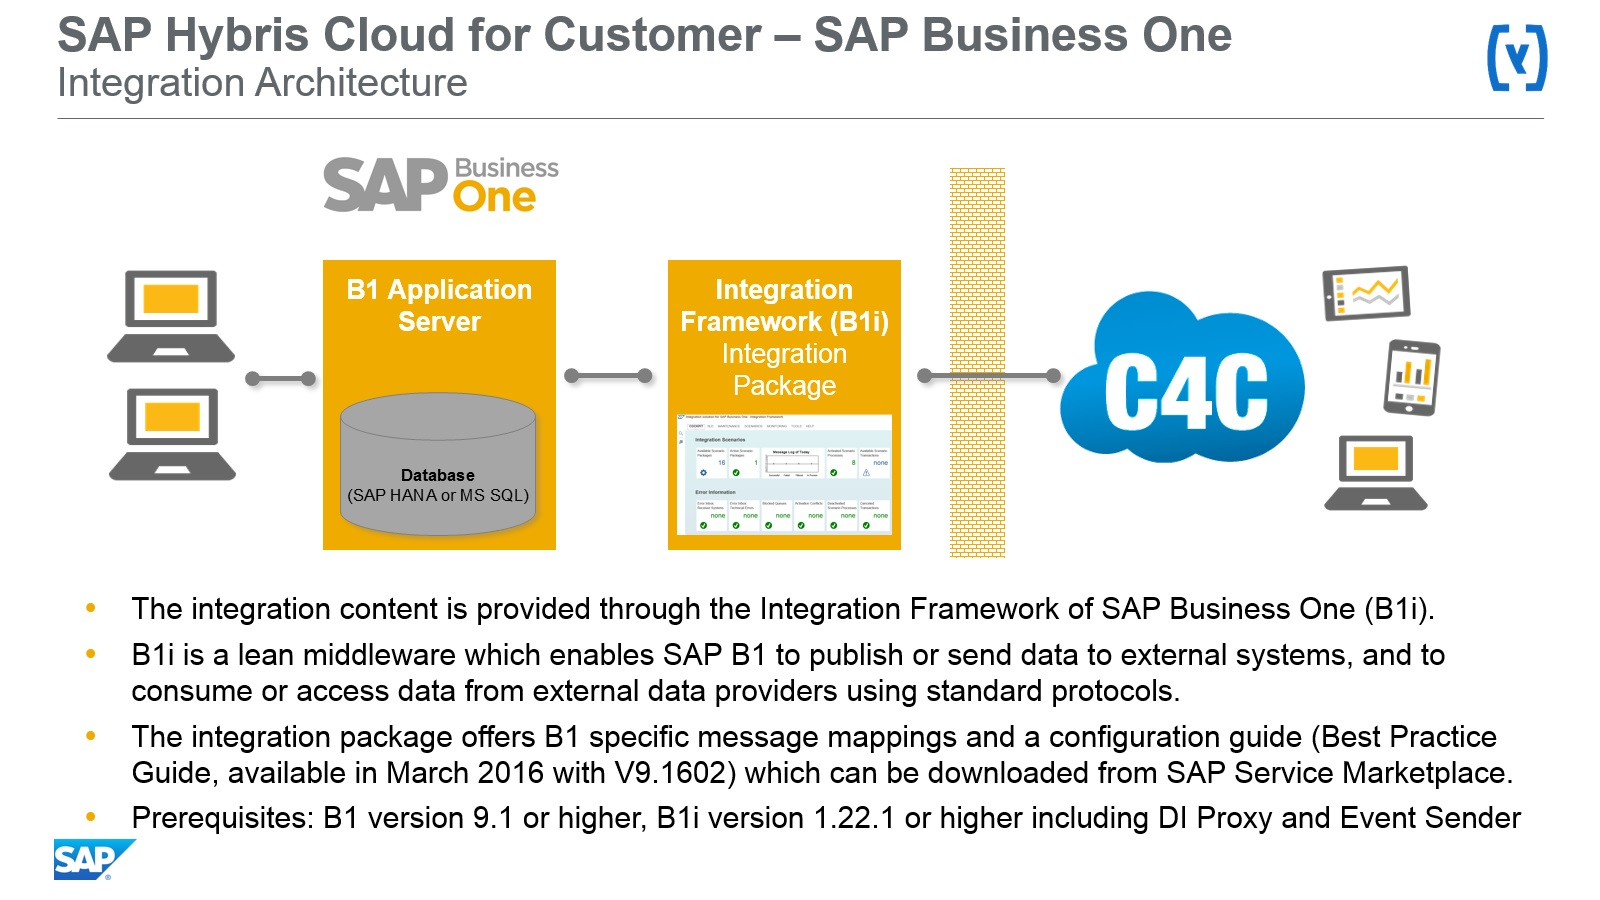 sap business one architecture diagram car audio subwoofer wiring hybris cloud for customer integration with